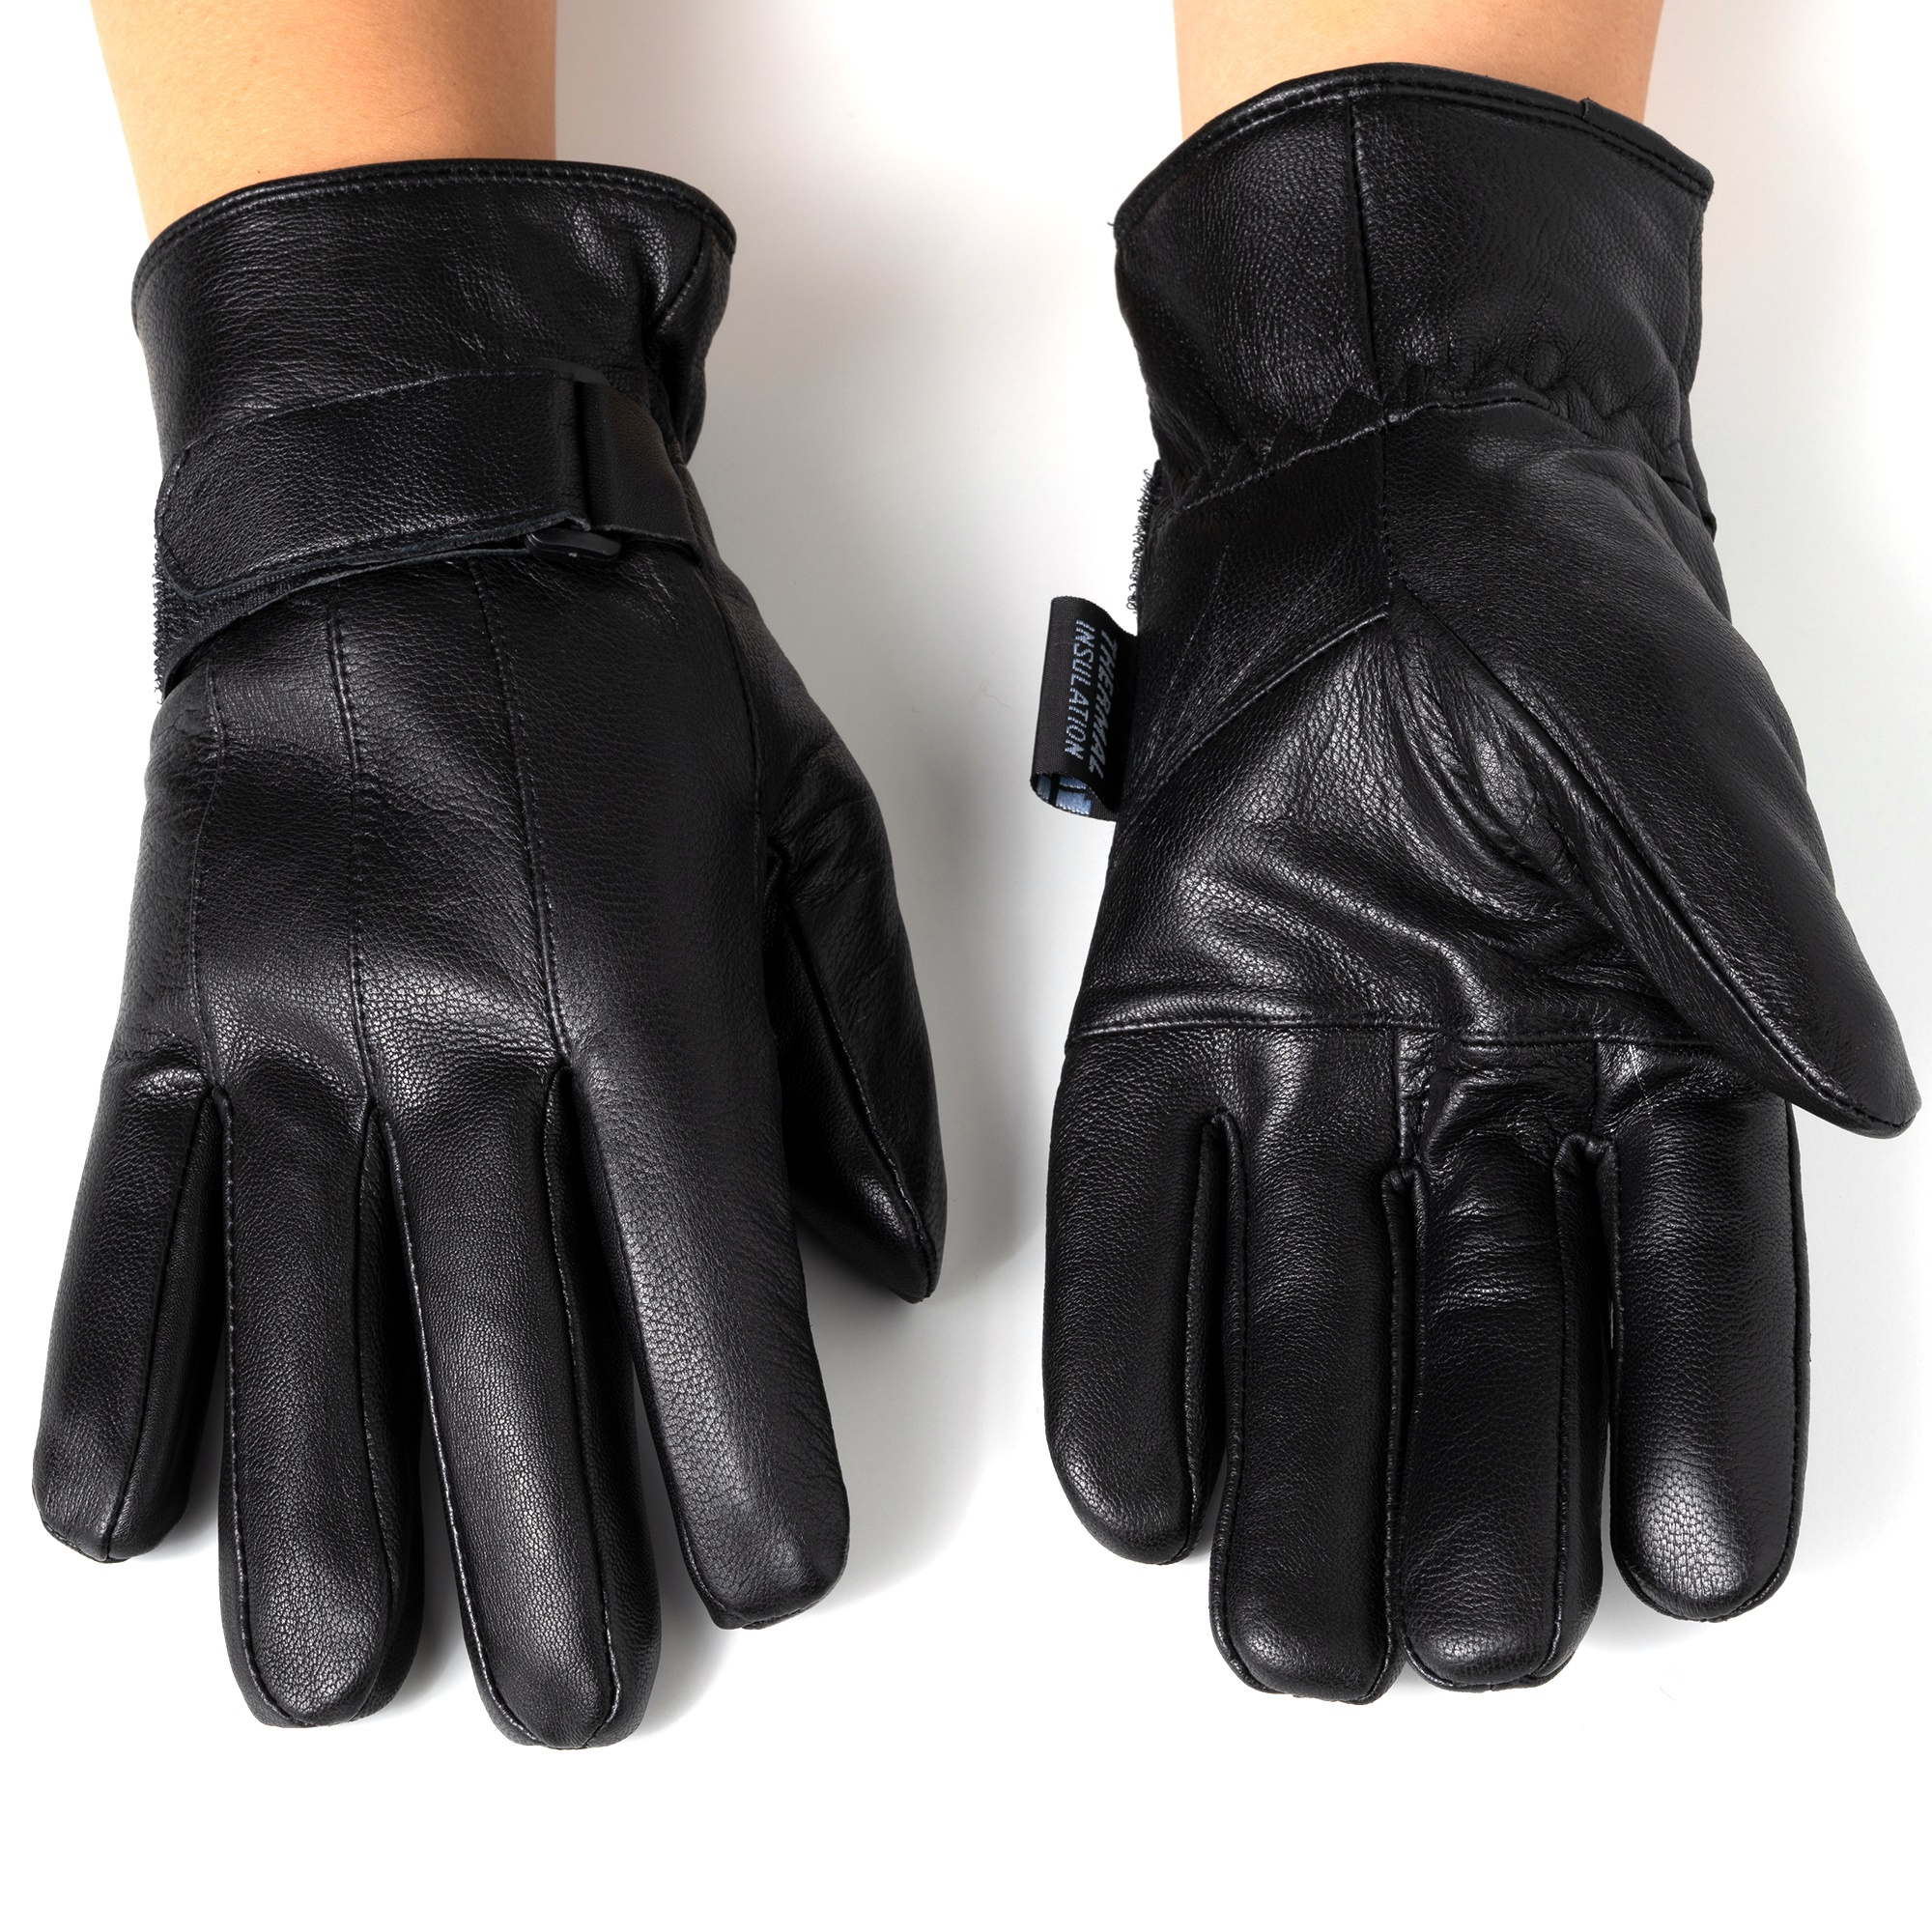 Alpine-Swiss-Mens-Gloves-Dressy-Genuine-Leather-Warm-Thermal-Lined-Wrist-Strap thumbnail 16